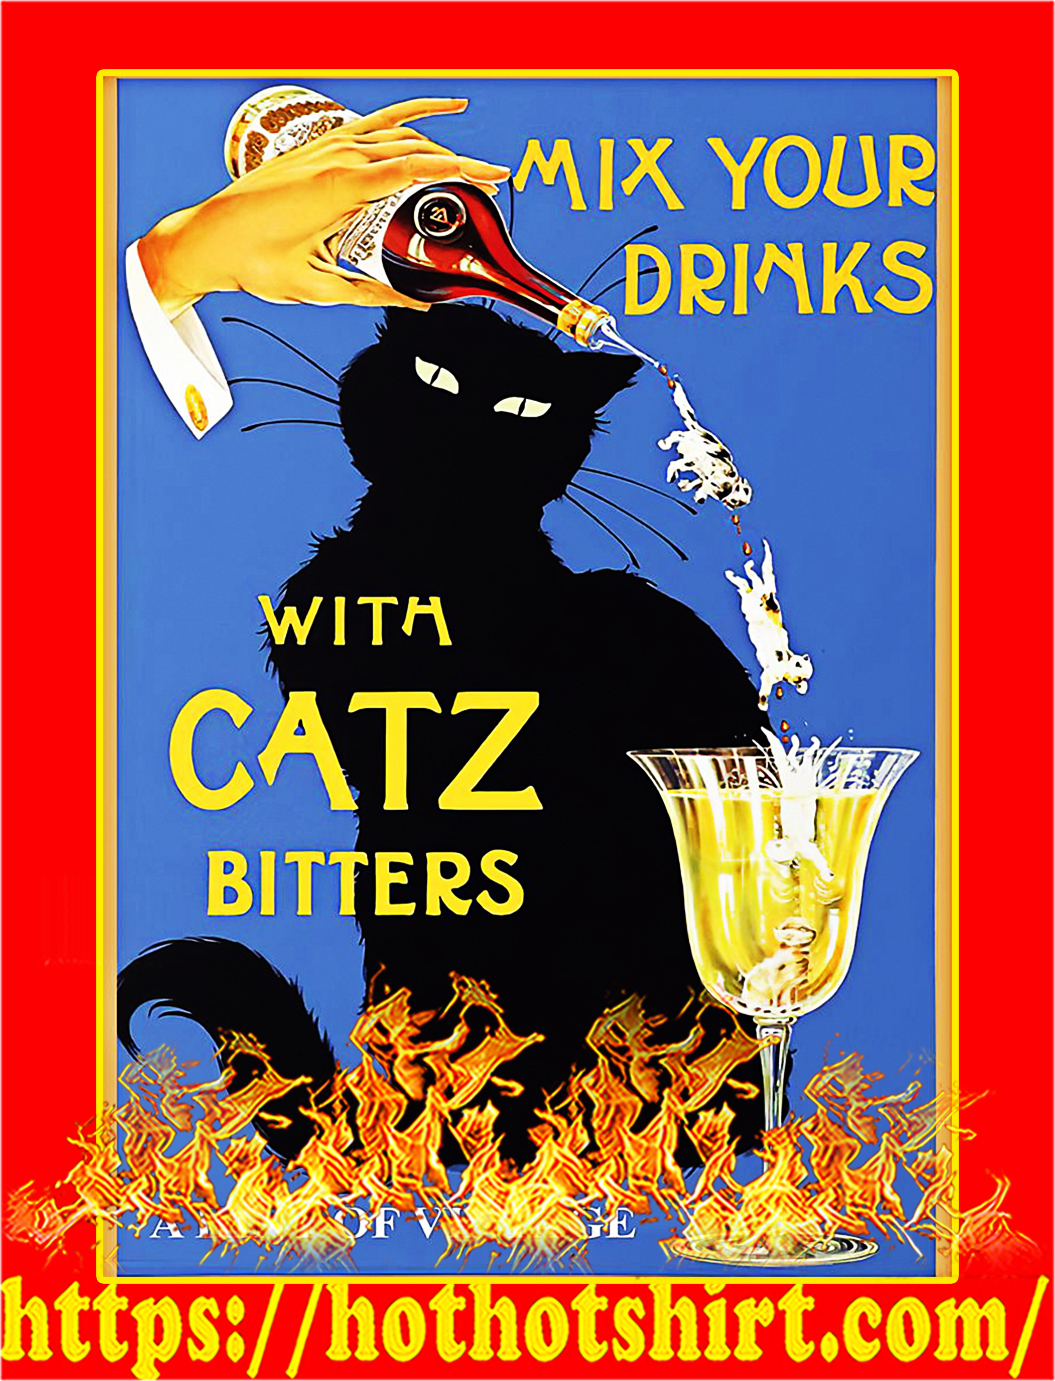 Mix your drinks with catz bitters poster - A3